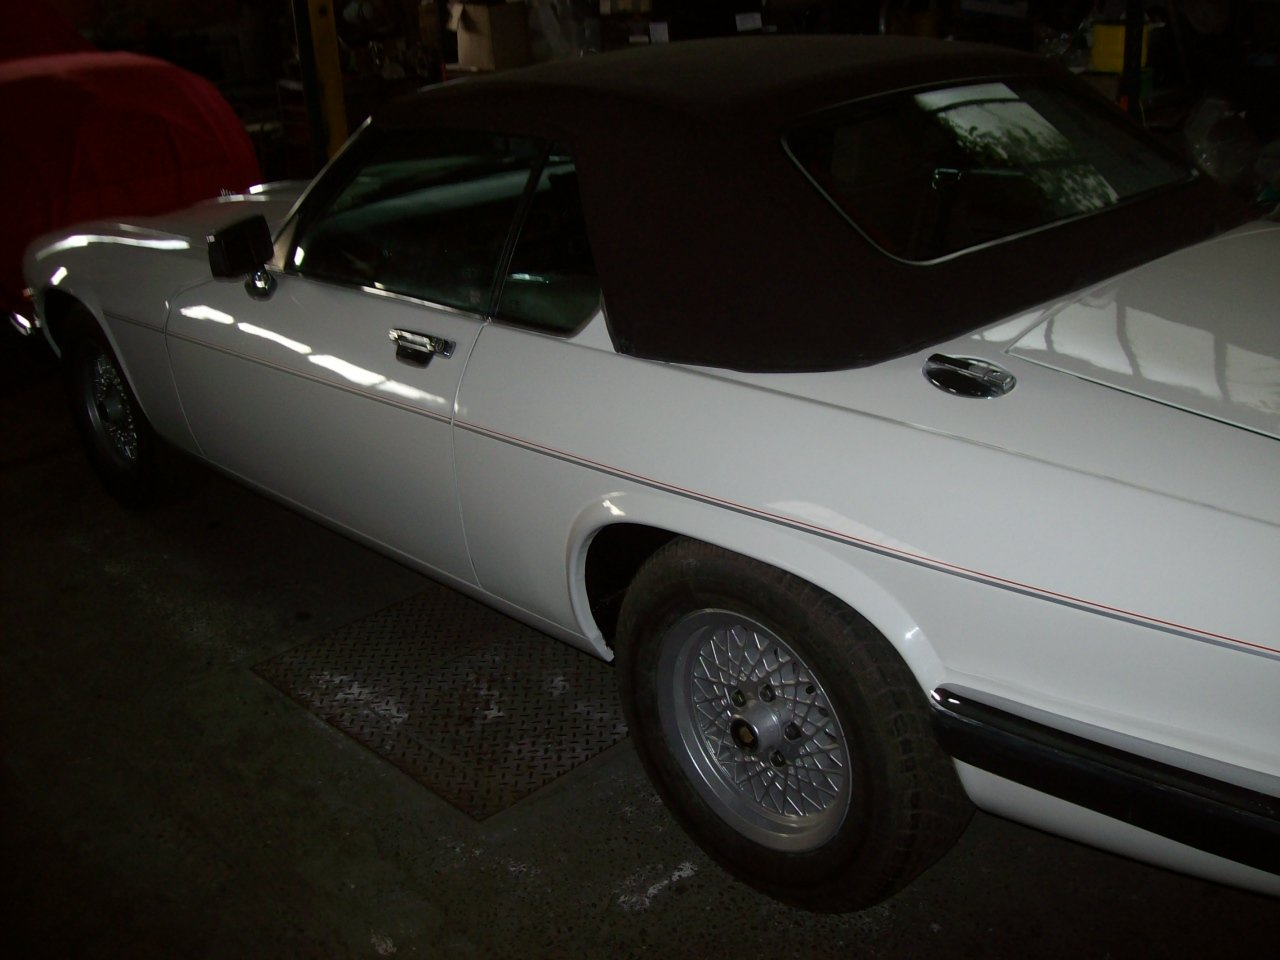 1988 Xjs v12 convertible For Sale (picture 1 of 2)